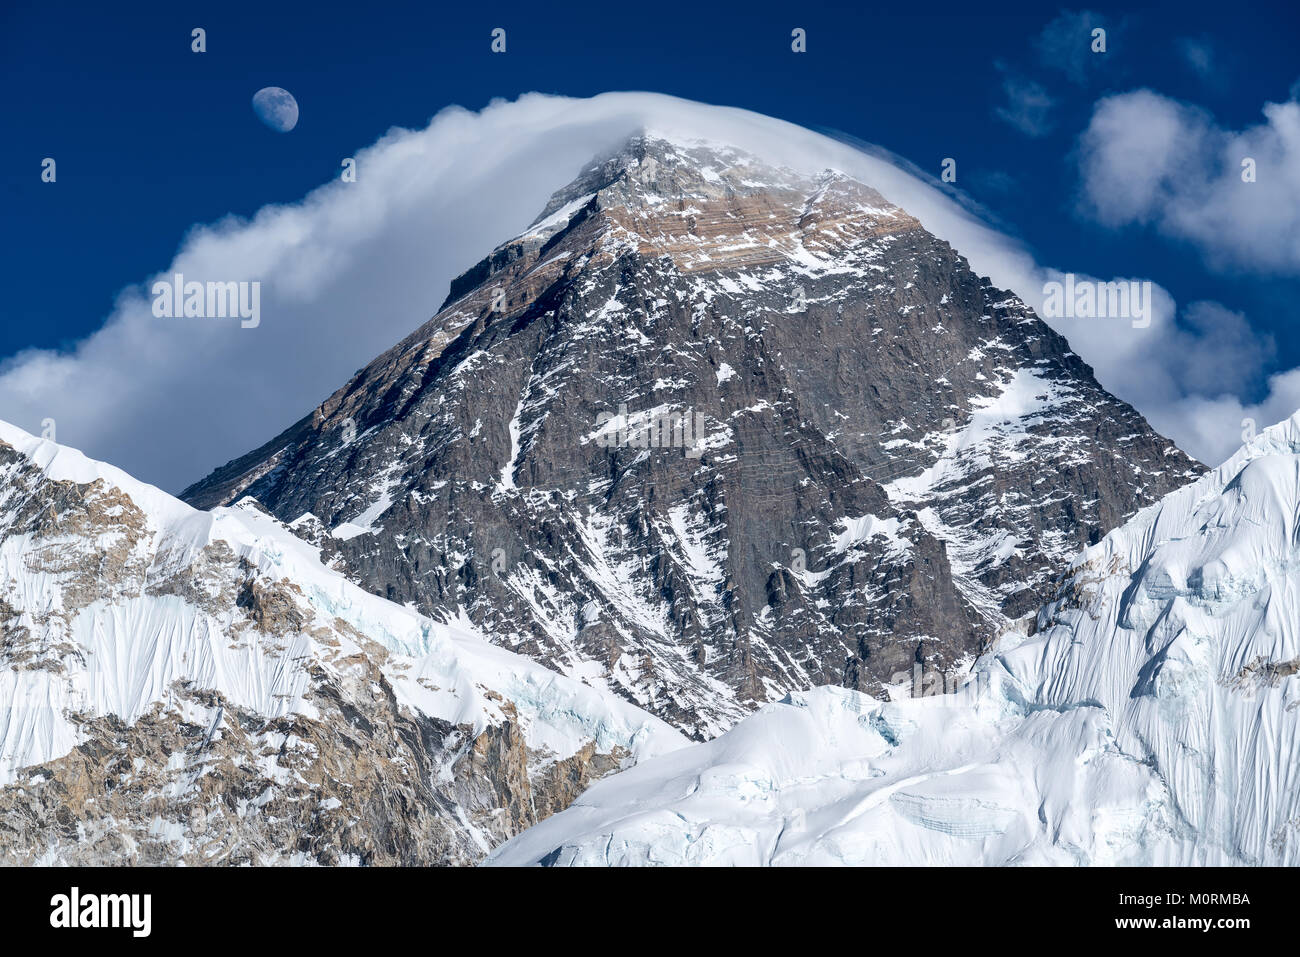 Mount Everest and rising Moon seen from Kala Patthar, Nepal - Stock Image